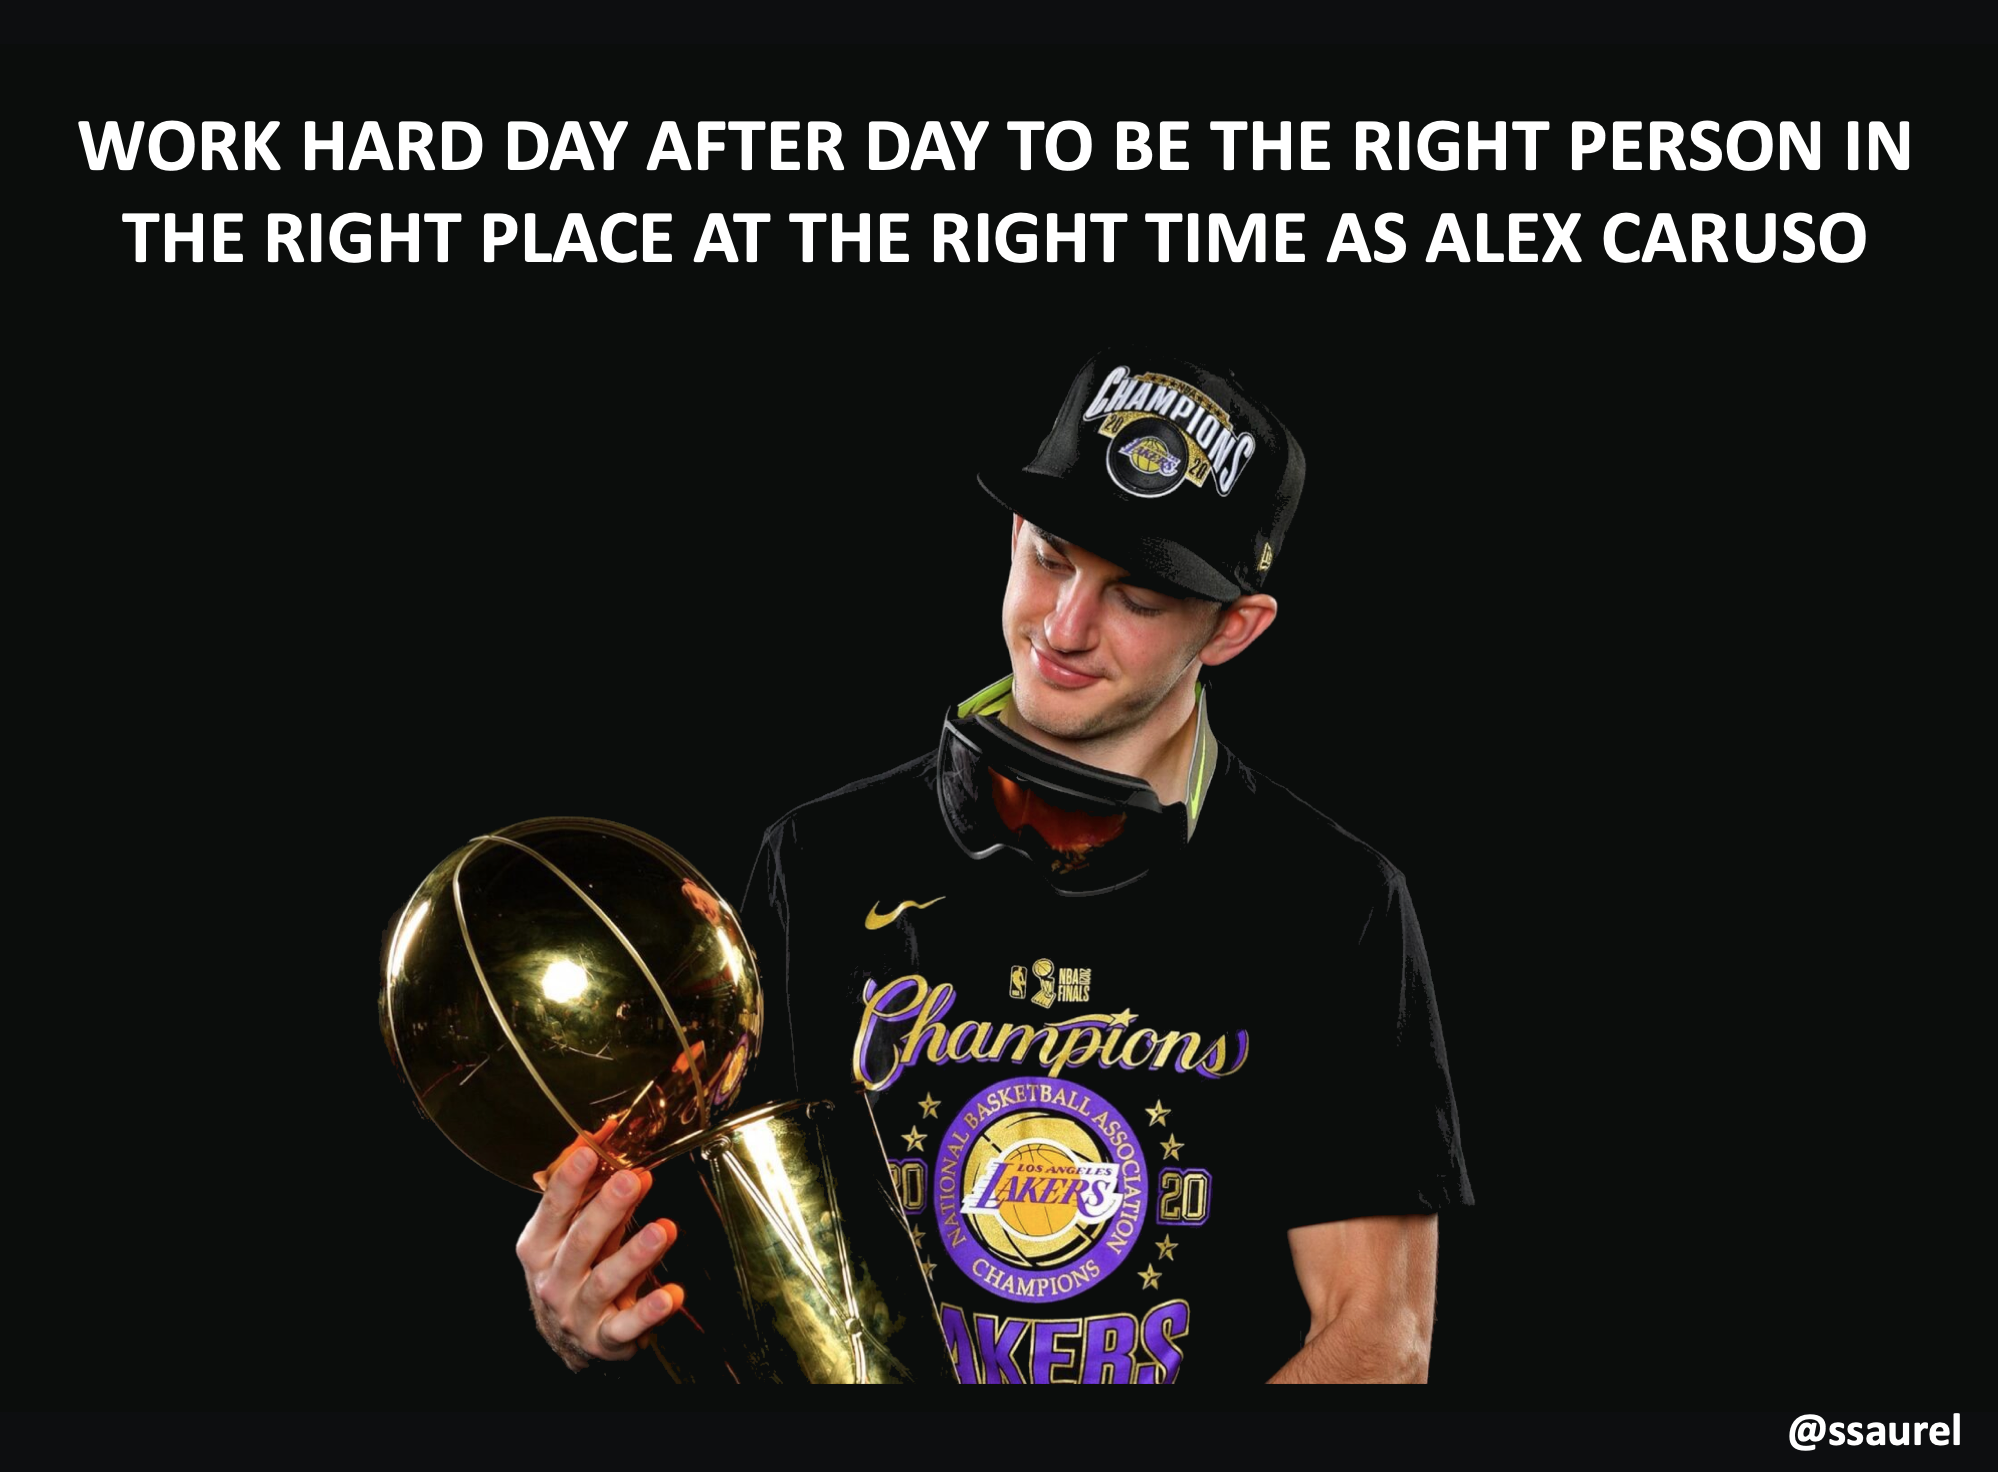 [Image] Work Hard Day After Day to Be the Right Person in the Right Place at the Right Time